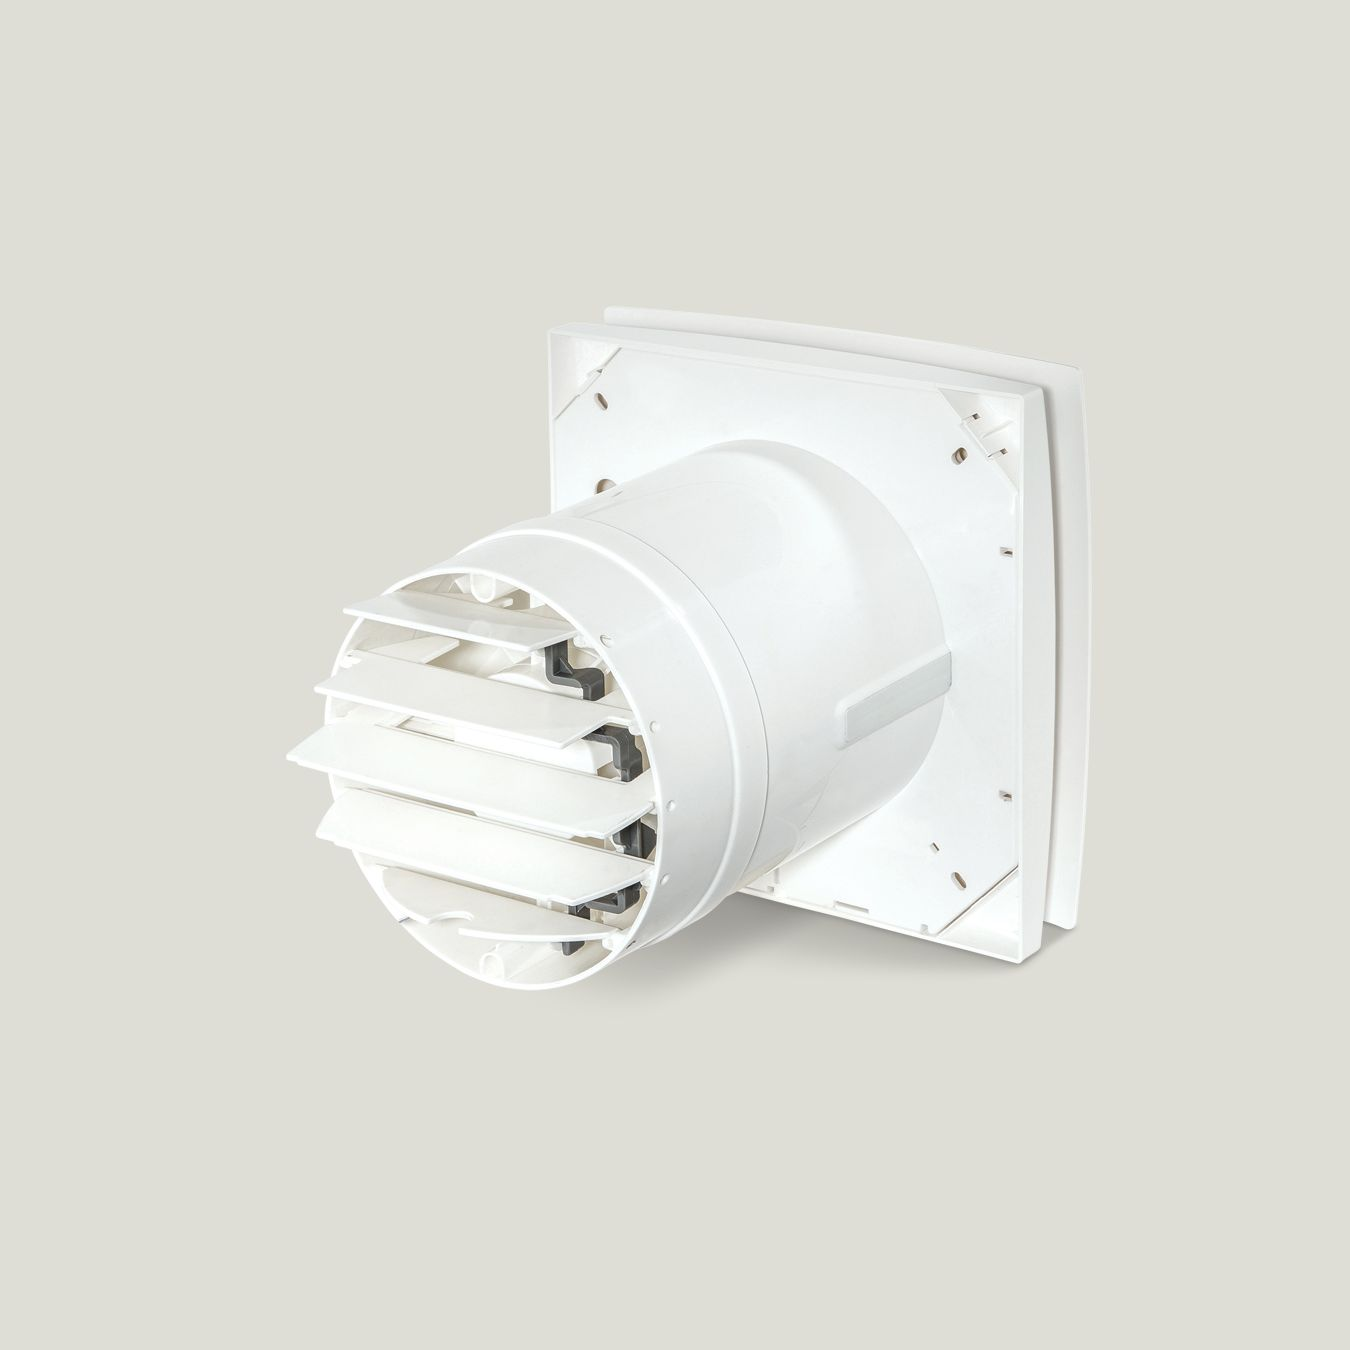 150mm Ceiling/Wall Exhaust Fans - AU Site